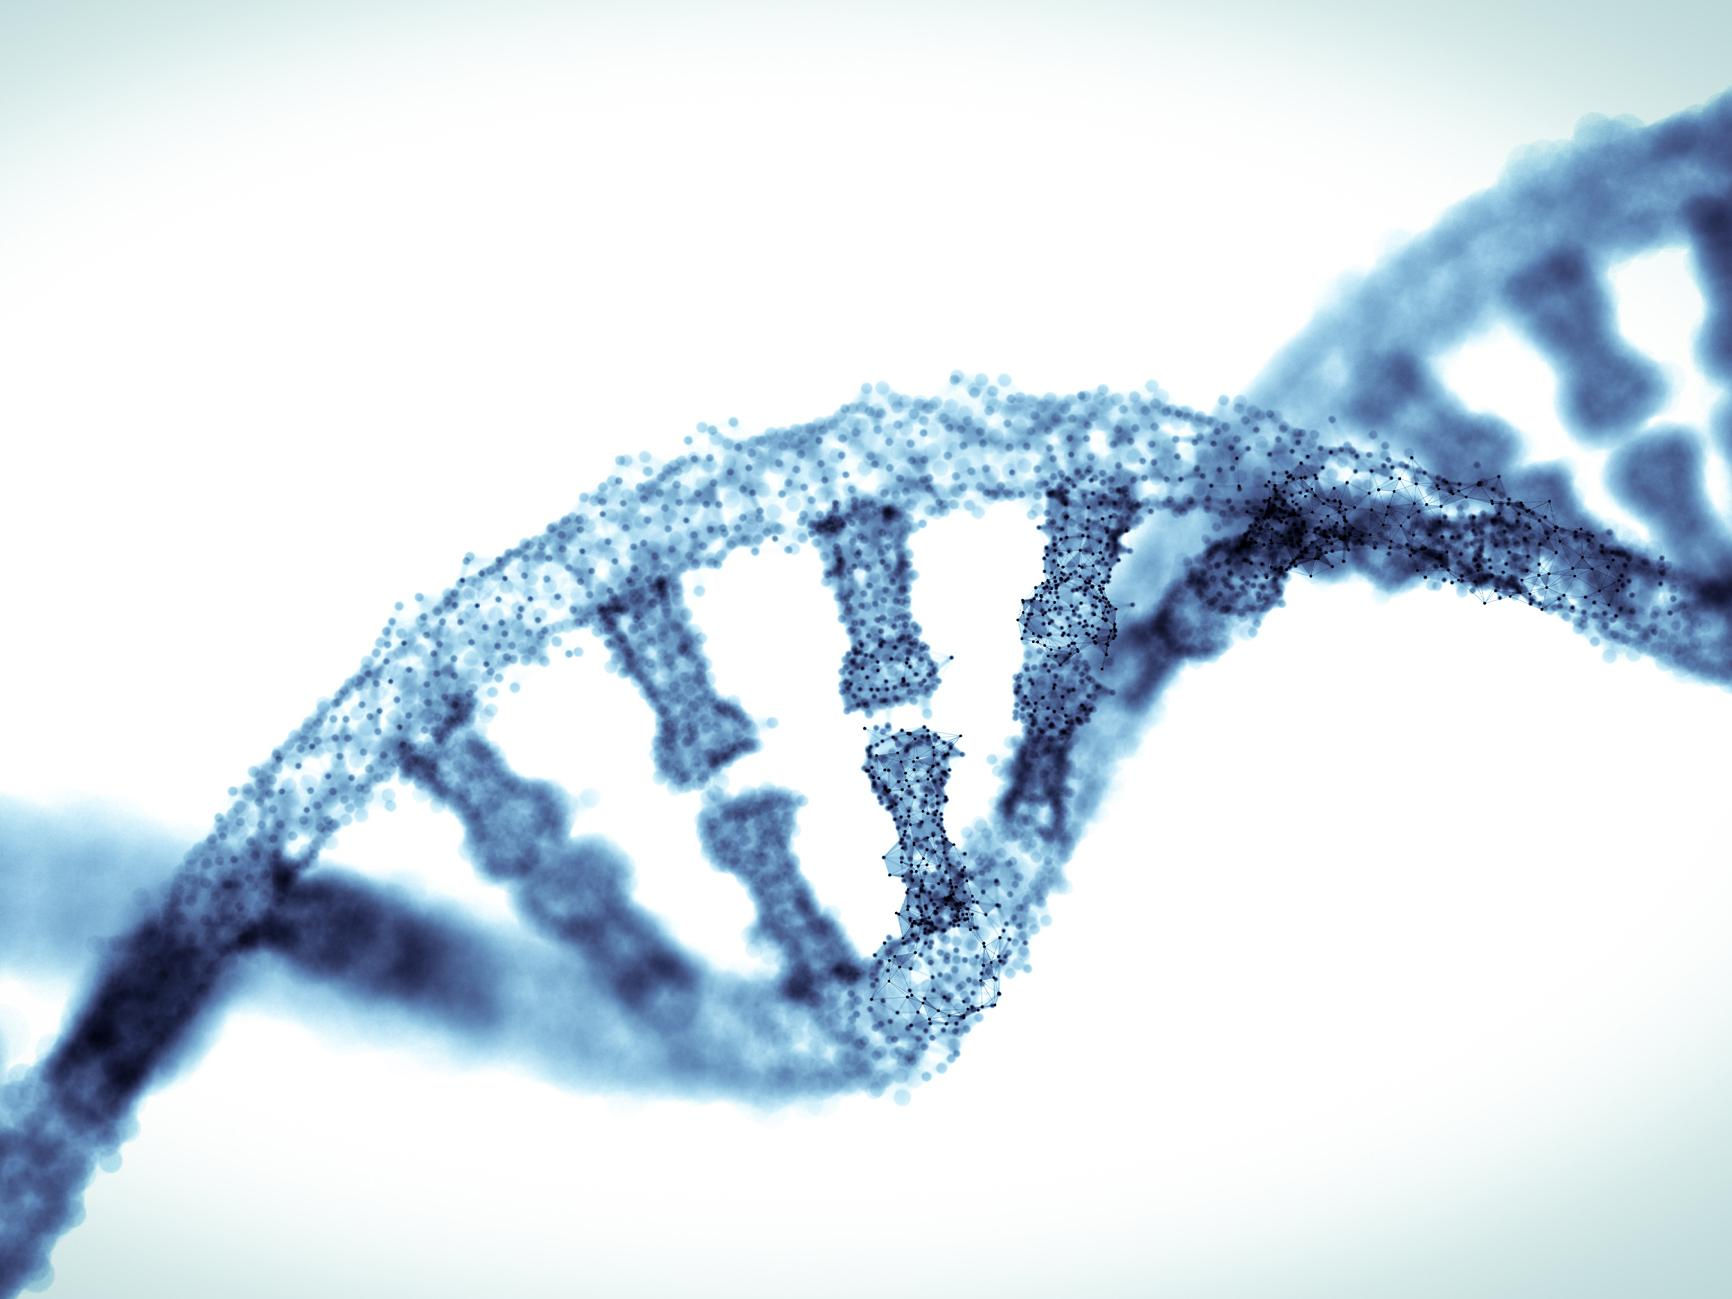 DNA can be manipulated to create tiny machines and computers